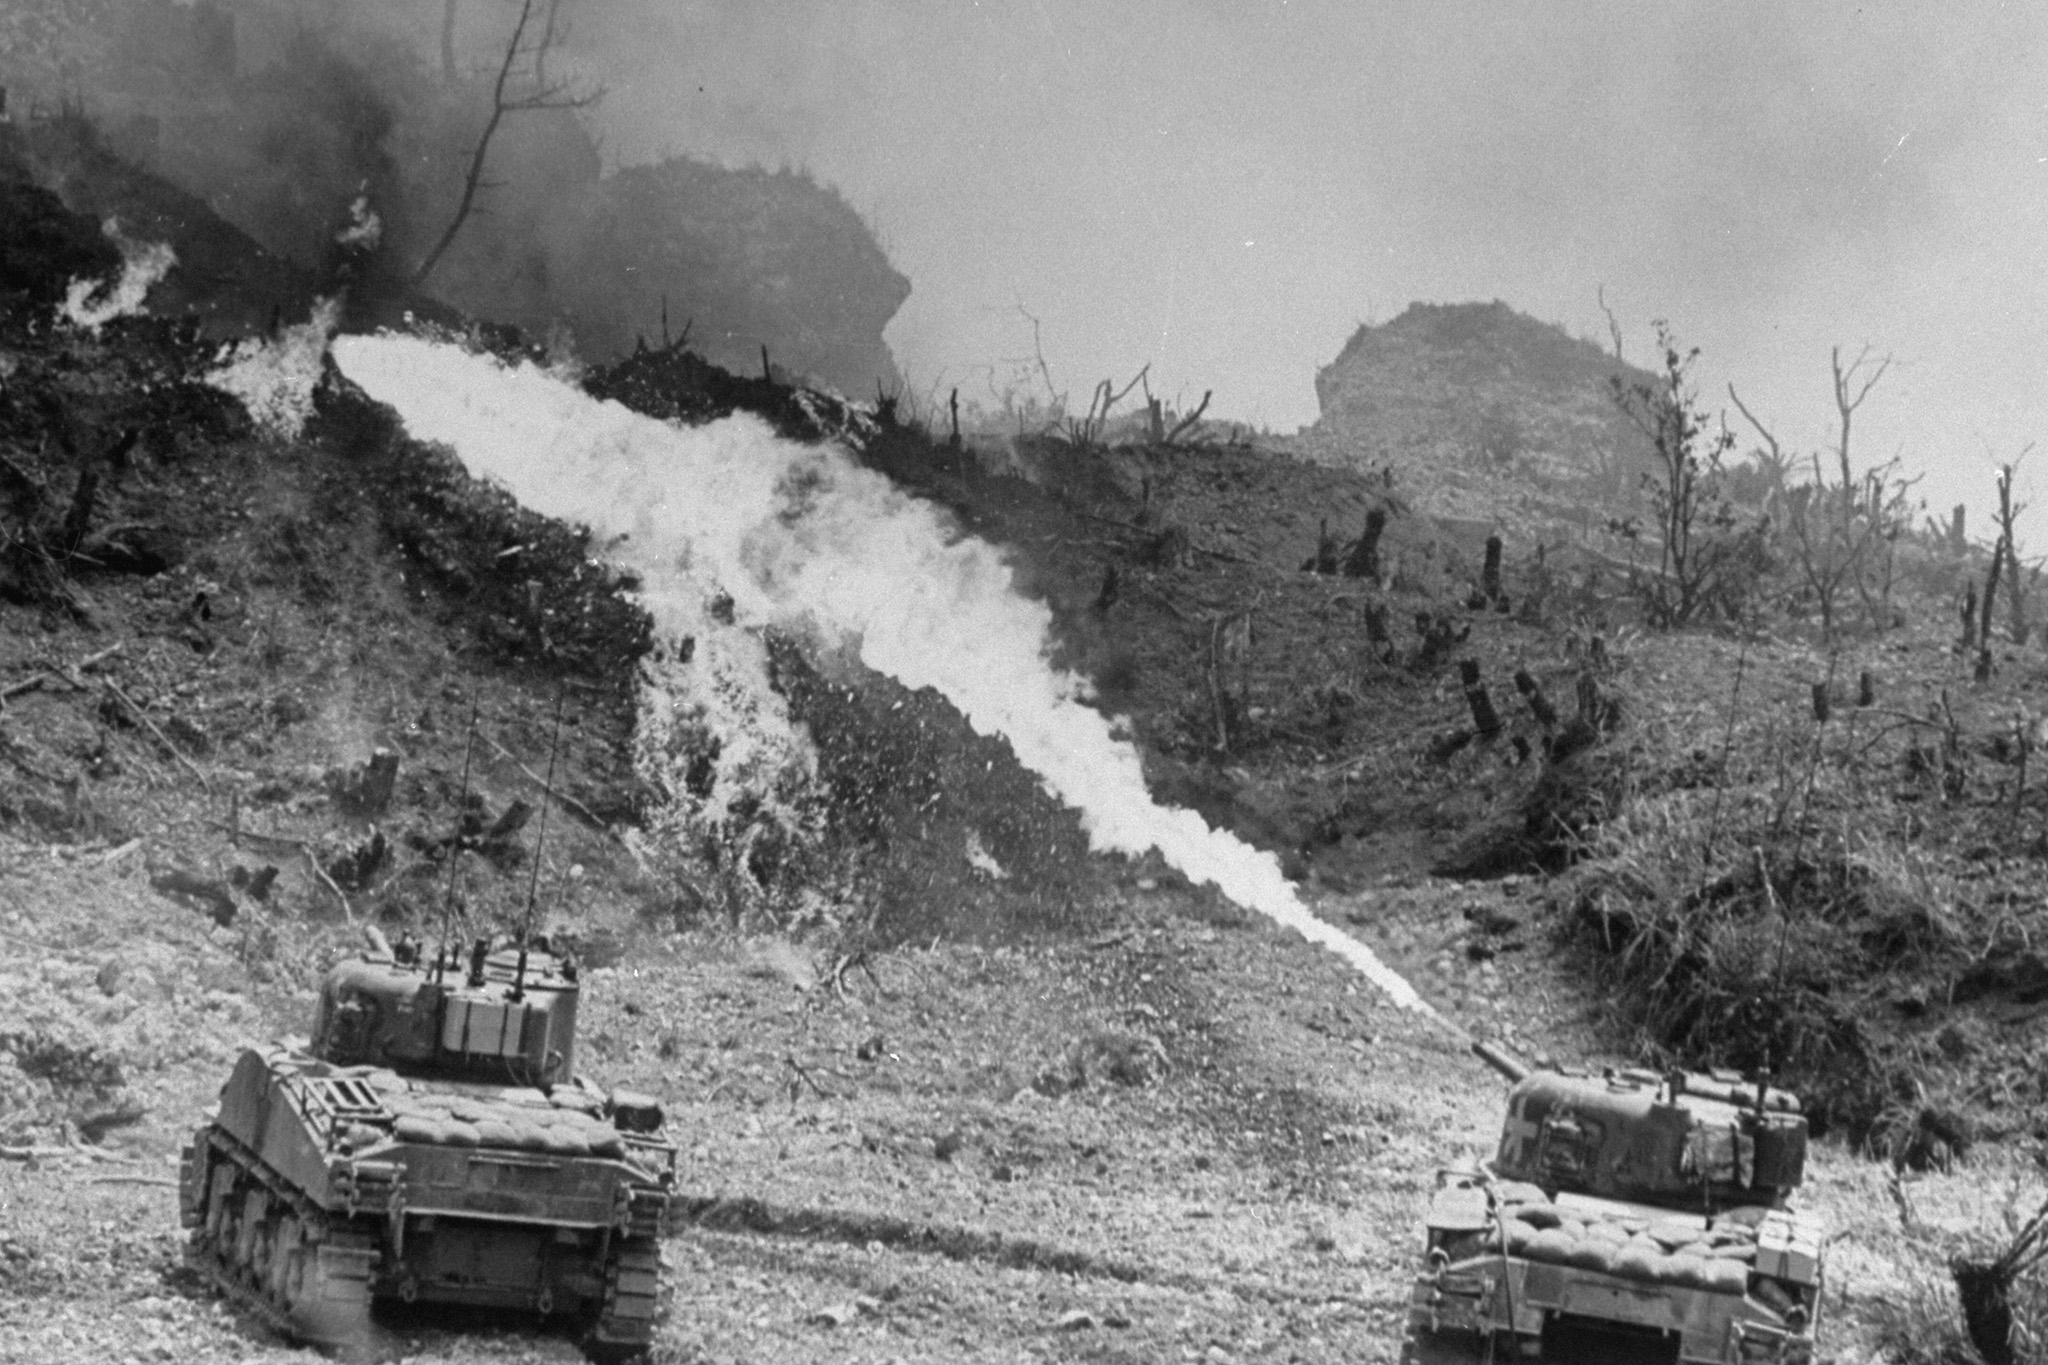 American tanks of the Army 7th Division using specially equipped flame throwers to burn Japanese defenders out of their caves and pillboxes, Okinawa, 1945. (Getty Images)